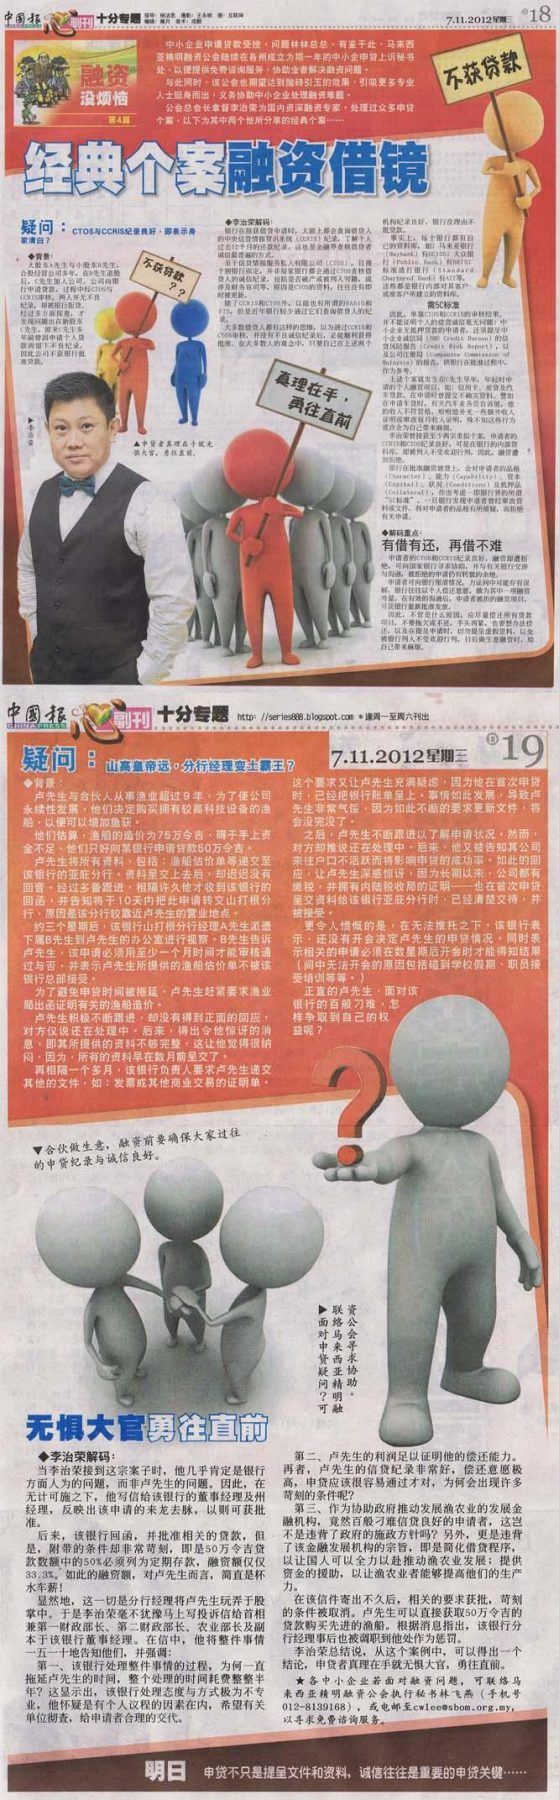 China Press – Feature Series 4, China Press - Feature Series 4 - Page 18 & 19. Special interview with Dato Lee Chee Weng (07-11-2012)